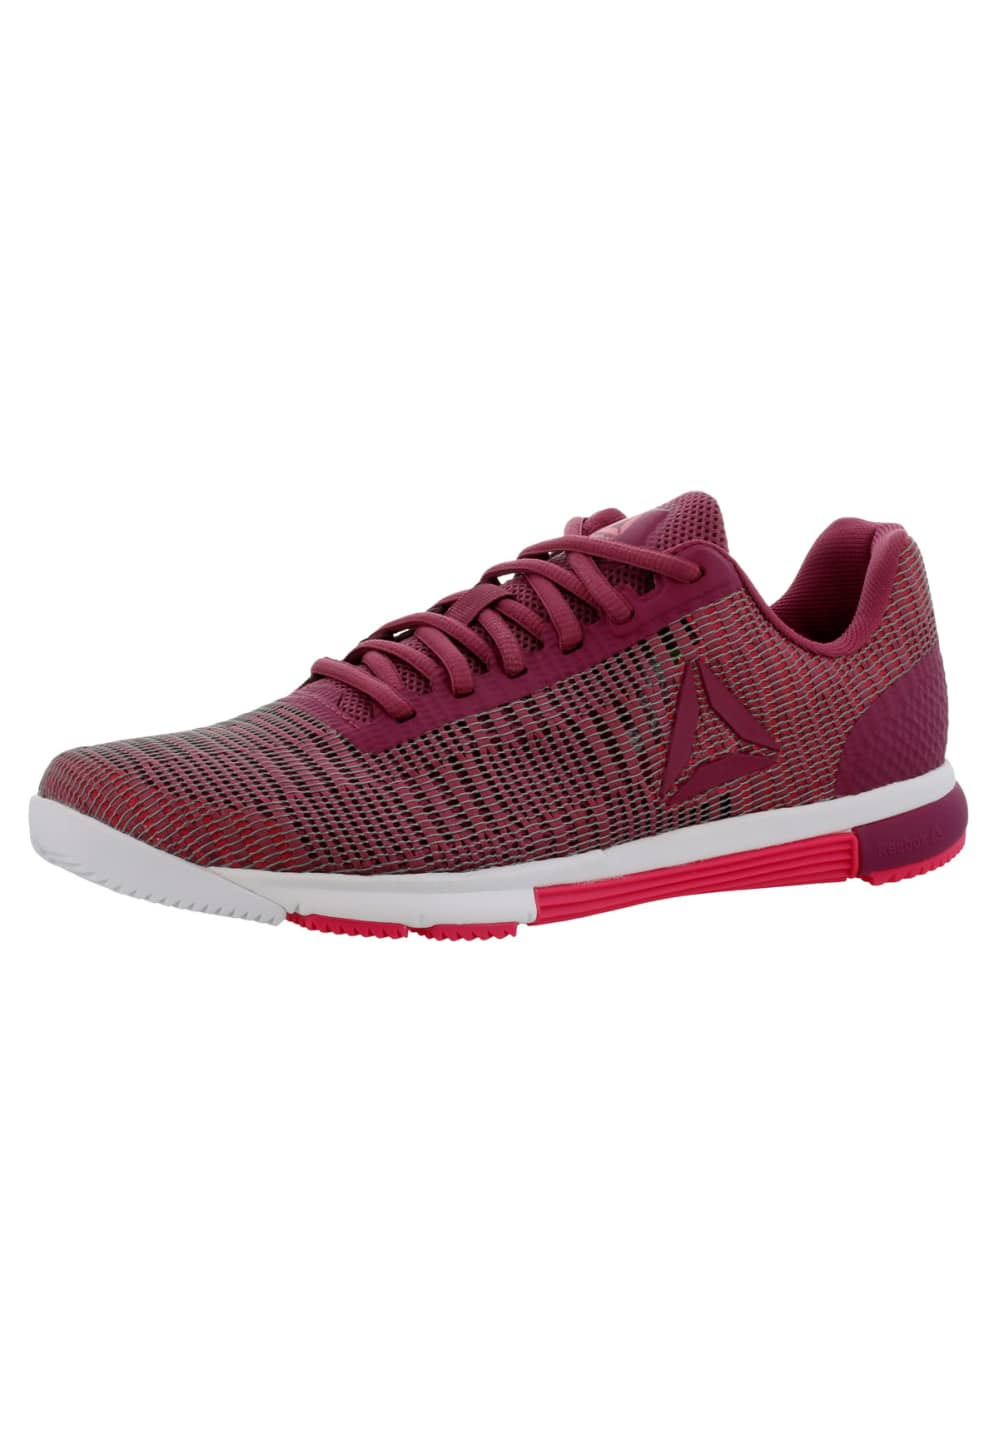 e0b3abc963c Reebok SPEED TR FLEXWEAVE - Fitness shoes for Women - Red